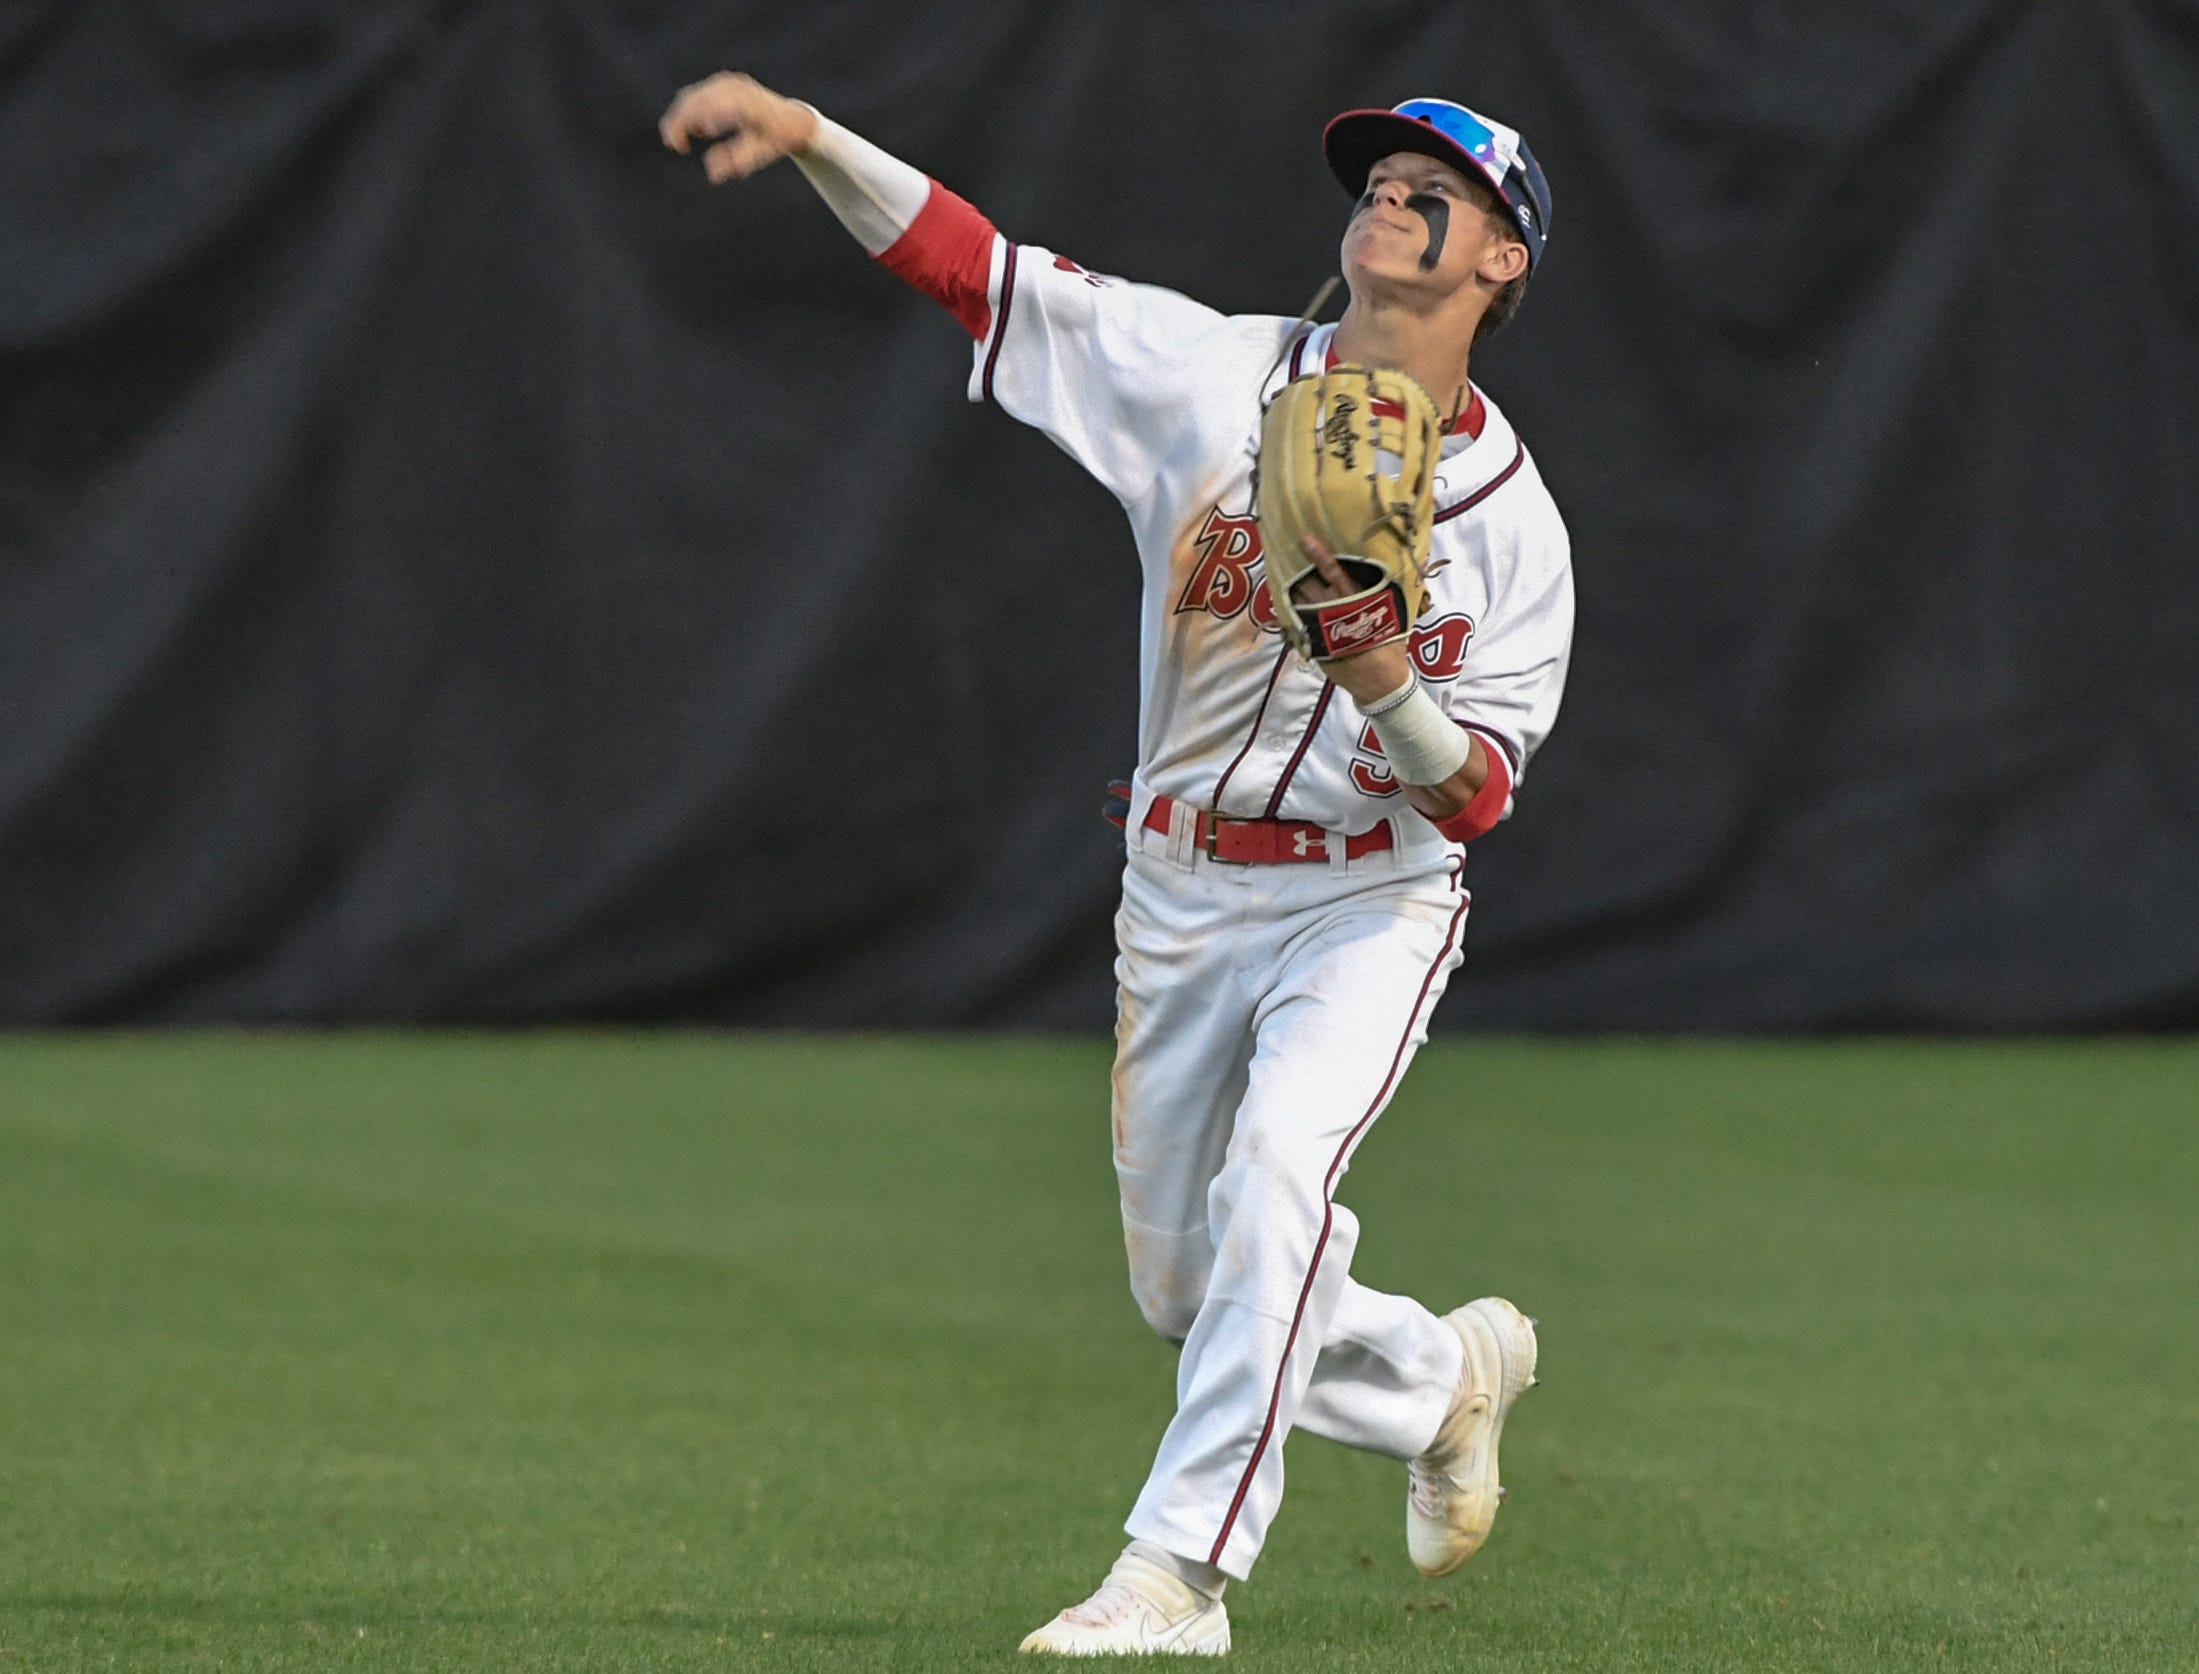 Belton-Honea Path sophomore Brady Alewine (5) throws back to the infield against Wren during the top of the fourth inning at Belton-Honea Path High School in Honea Path Wednesday, April 10, 2019.